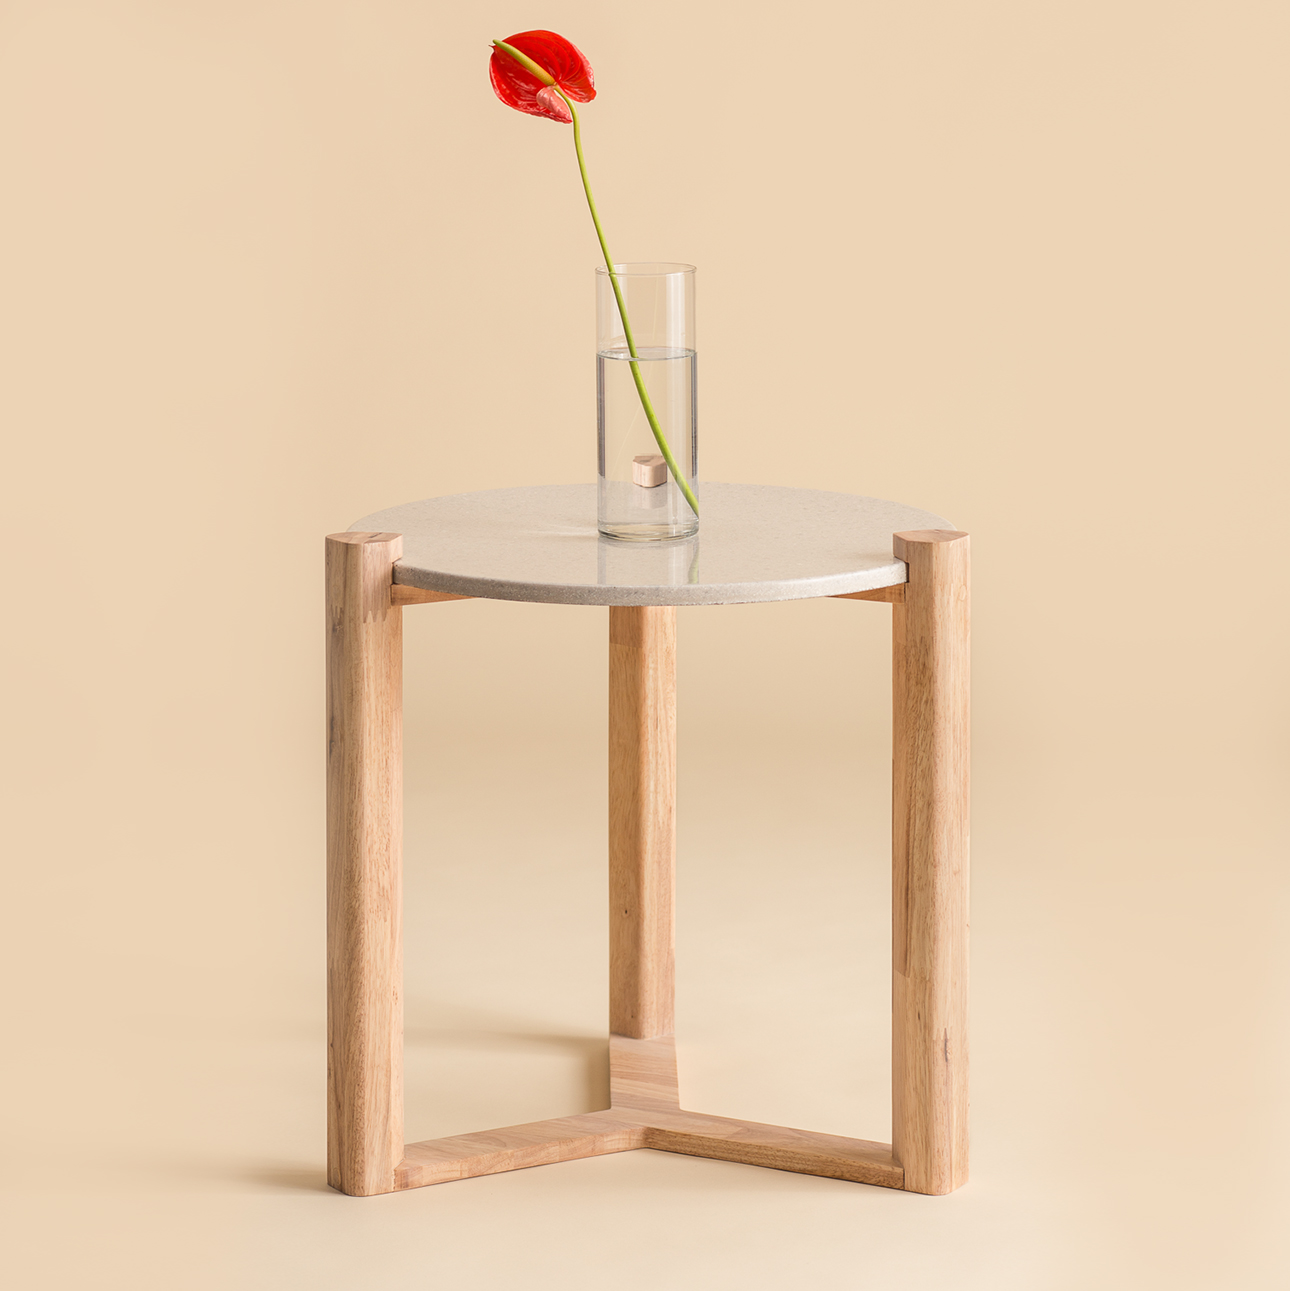 may-roundaccenttable.jpg